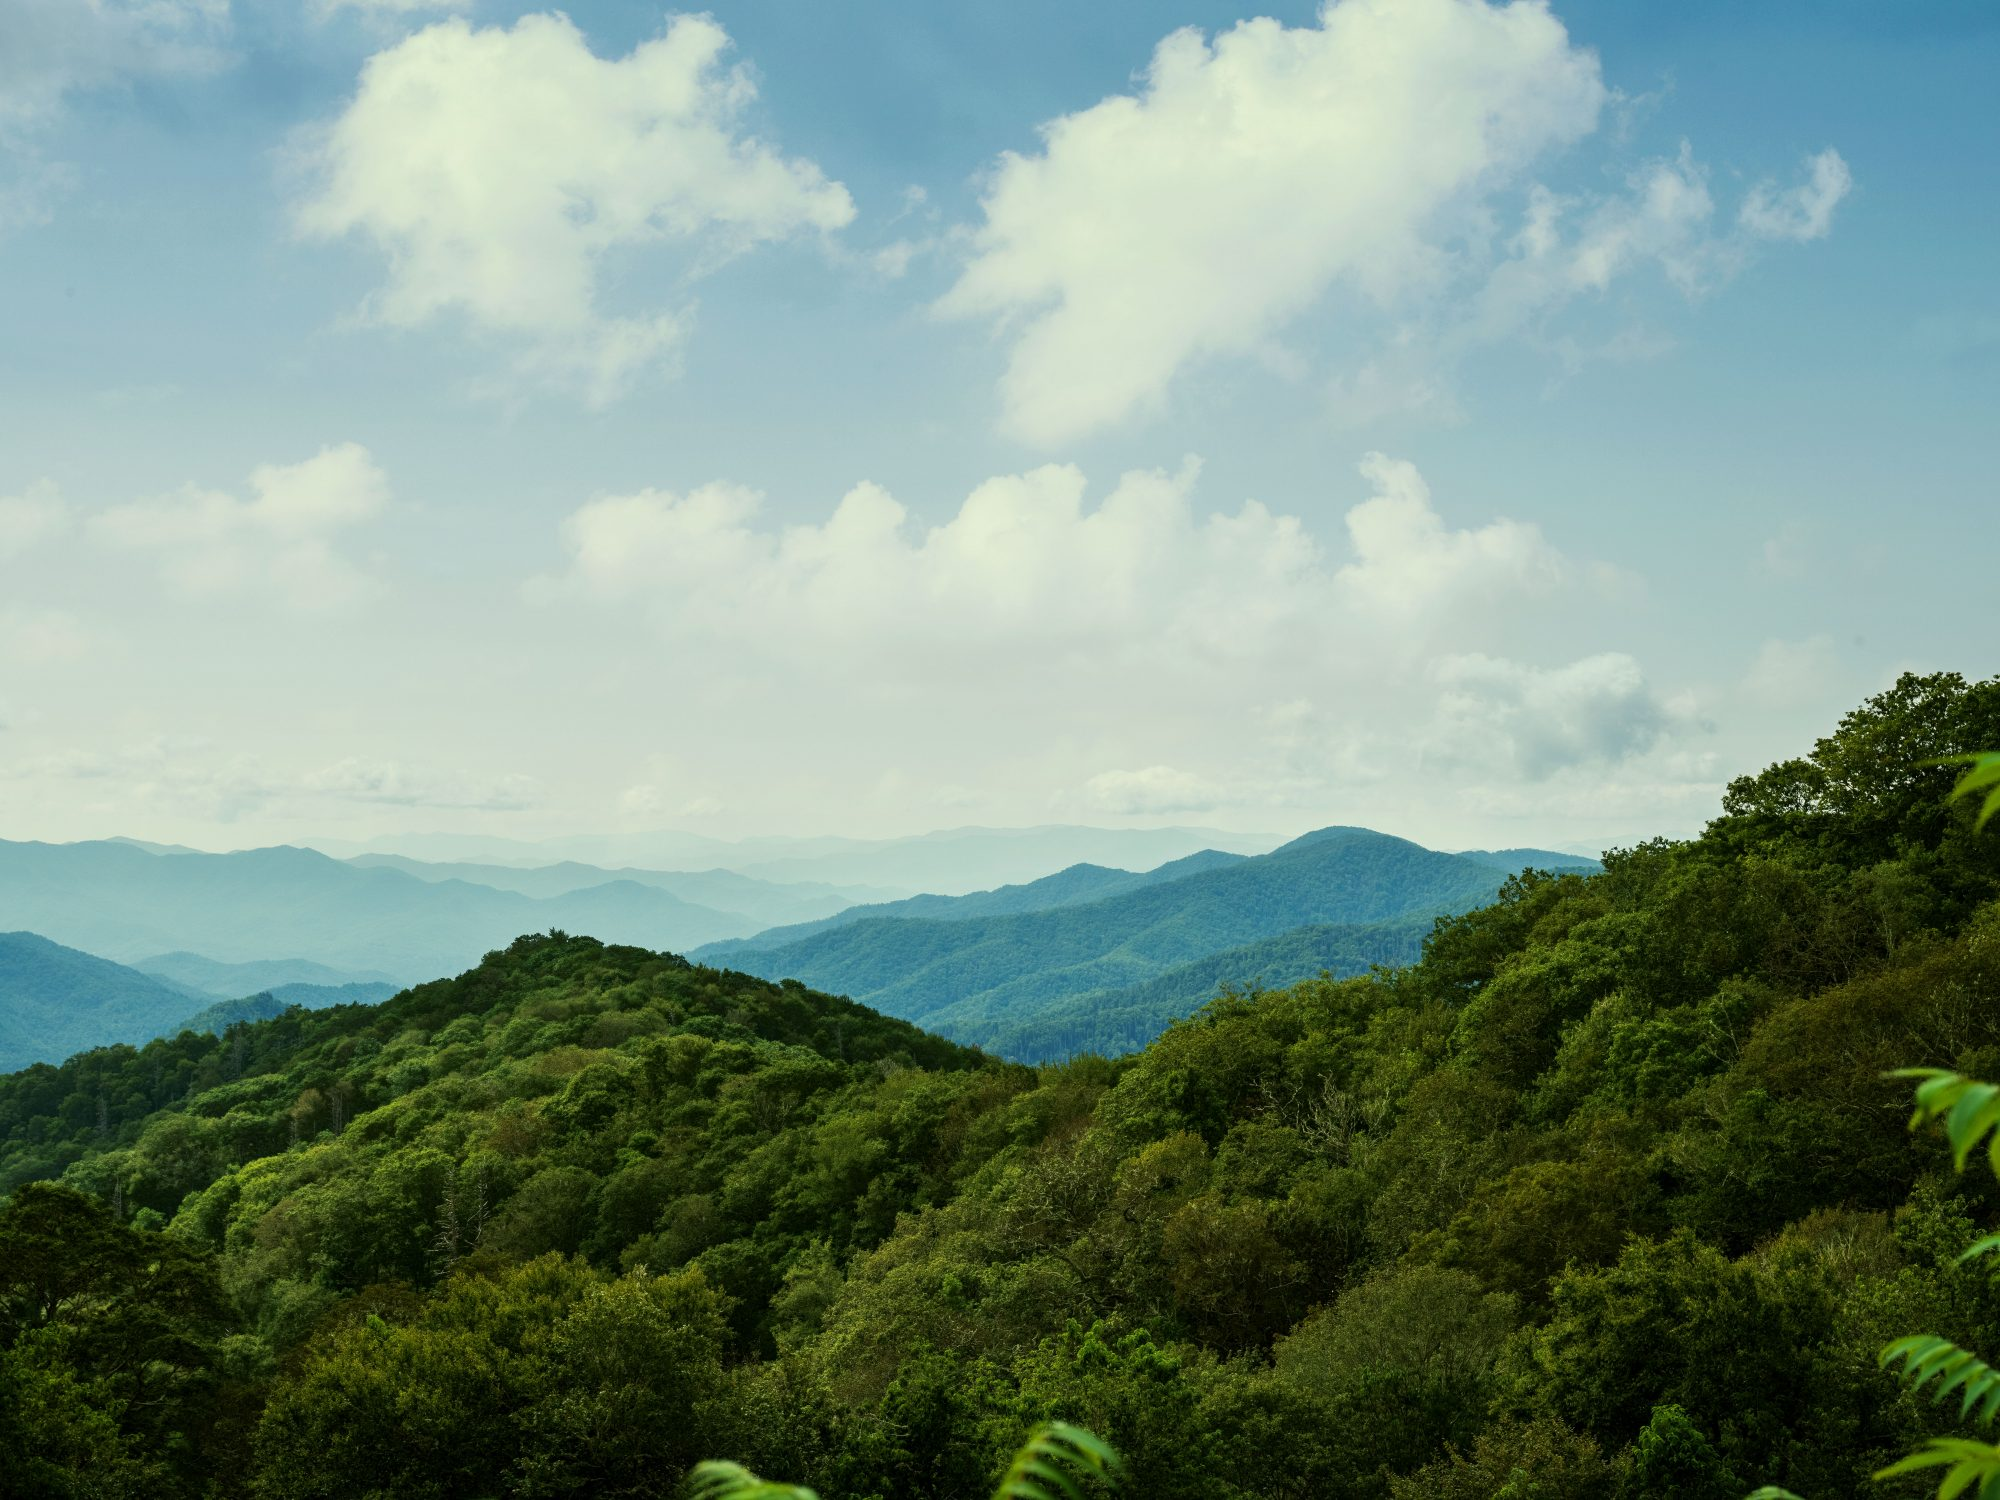 Green Mountain Tops of the Great Smoky Mountains National Park